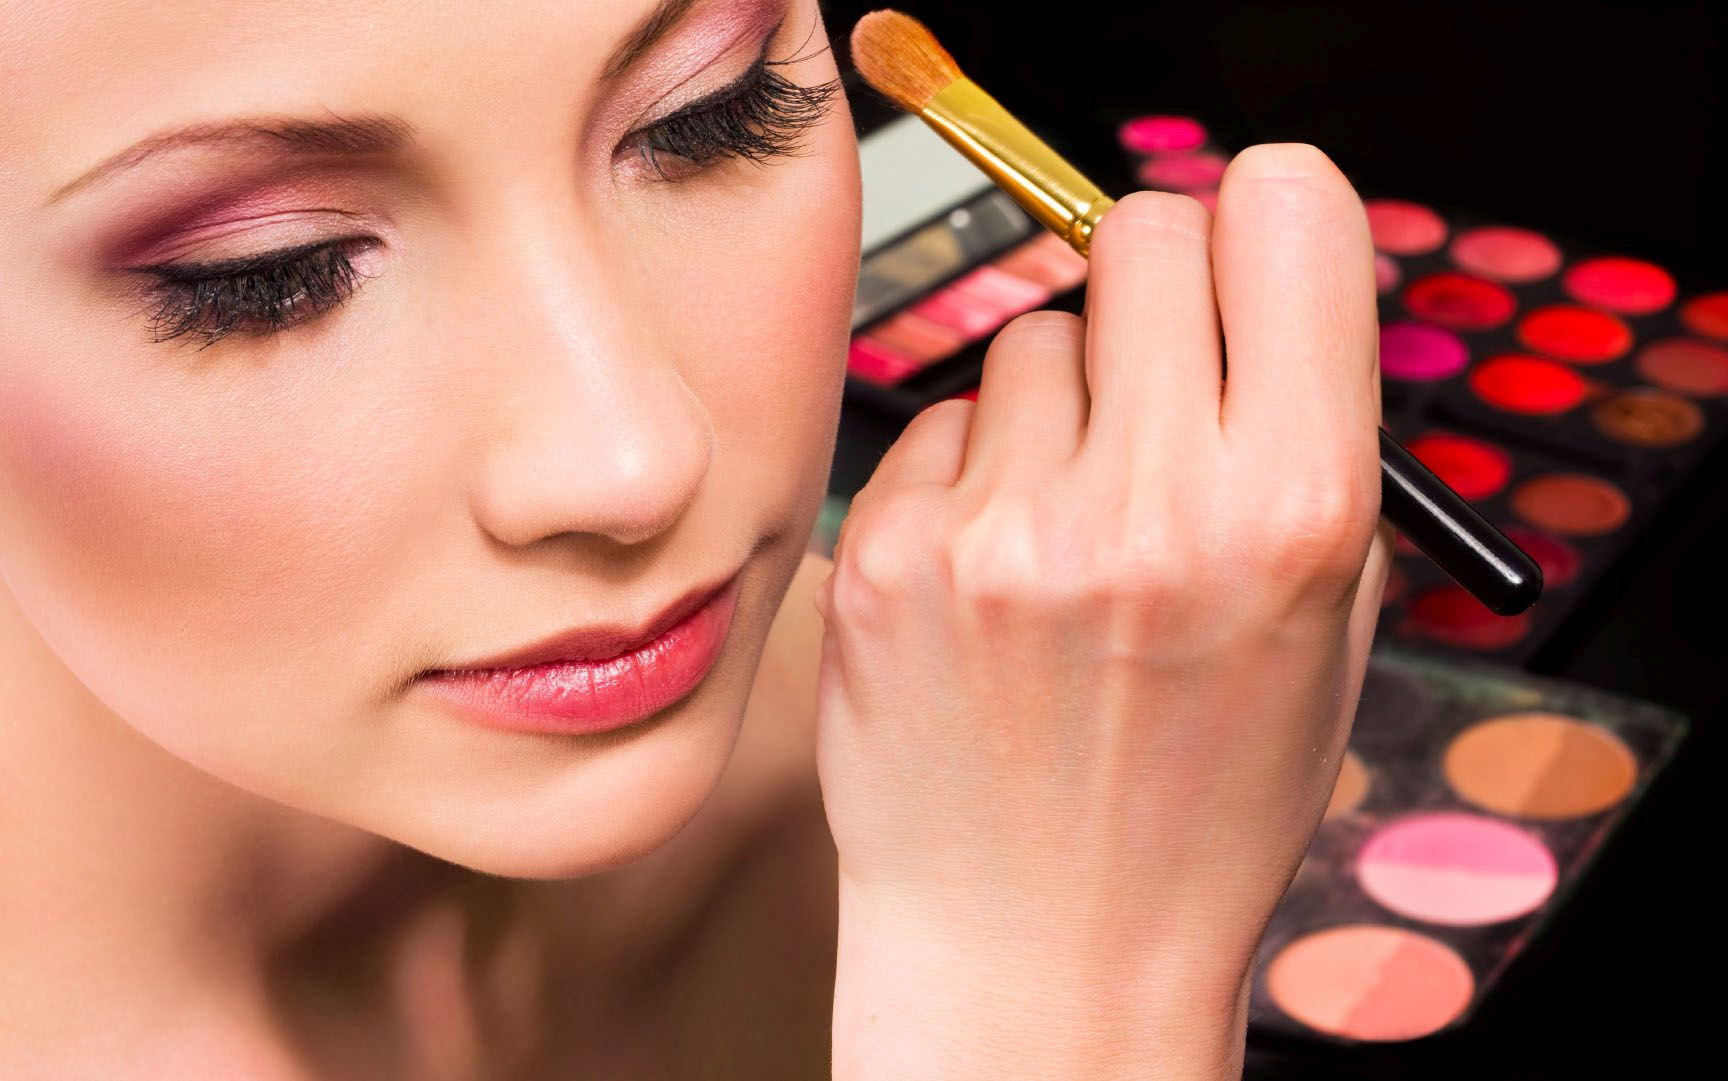 Cosmetics Business - Start a Prestigious High and Profit Business